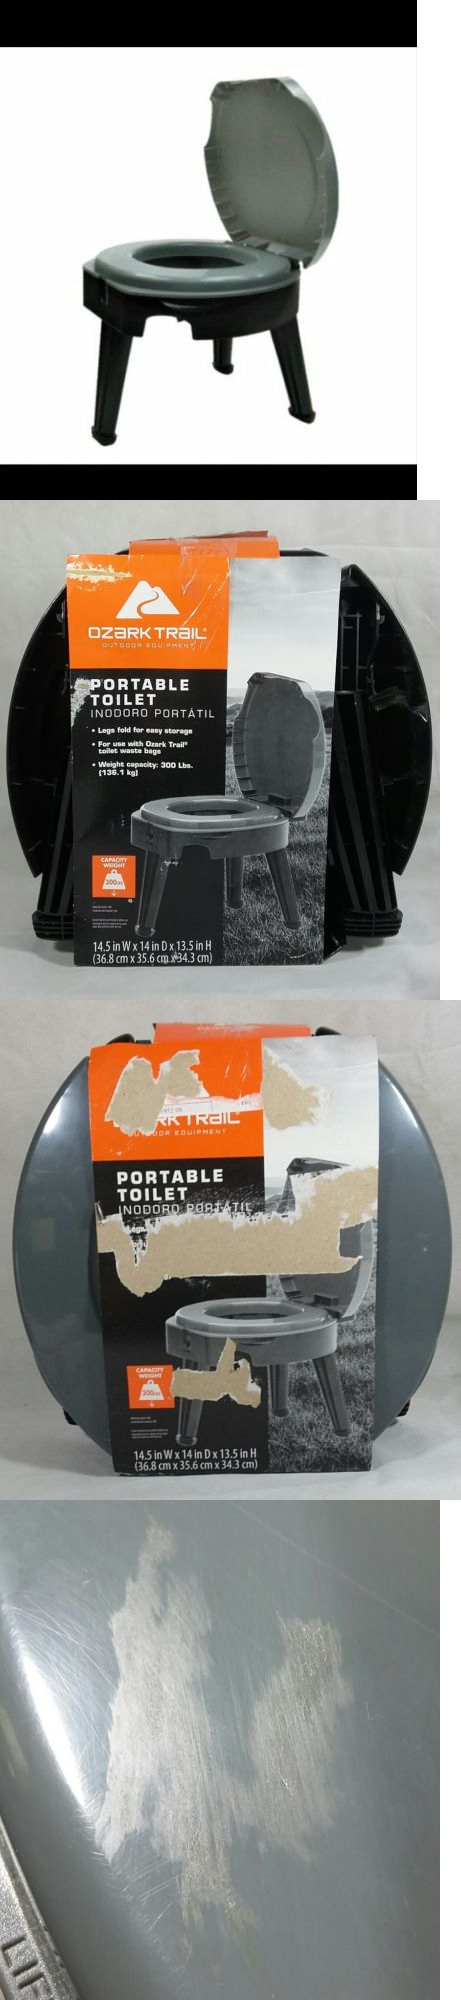 Portable Toilets and Accessories 181397: Reliance Folding Portable ...